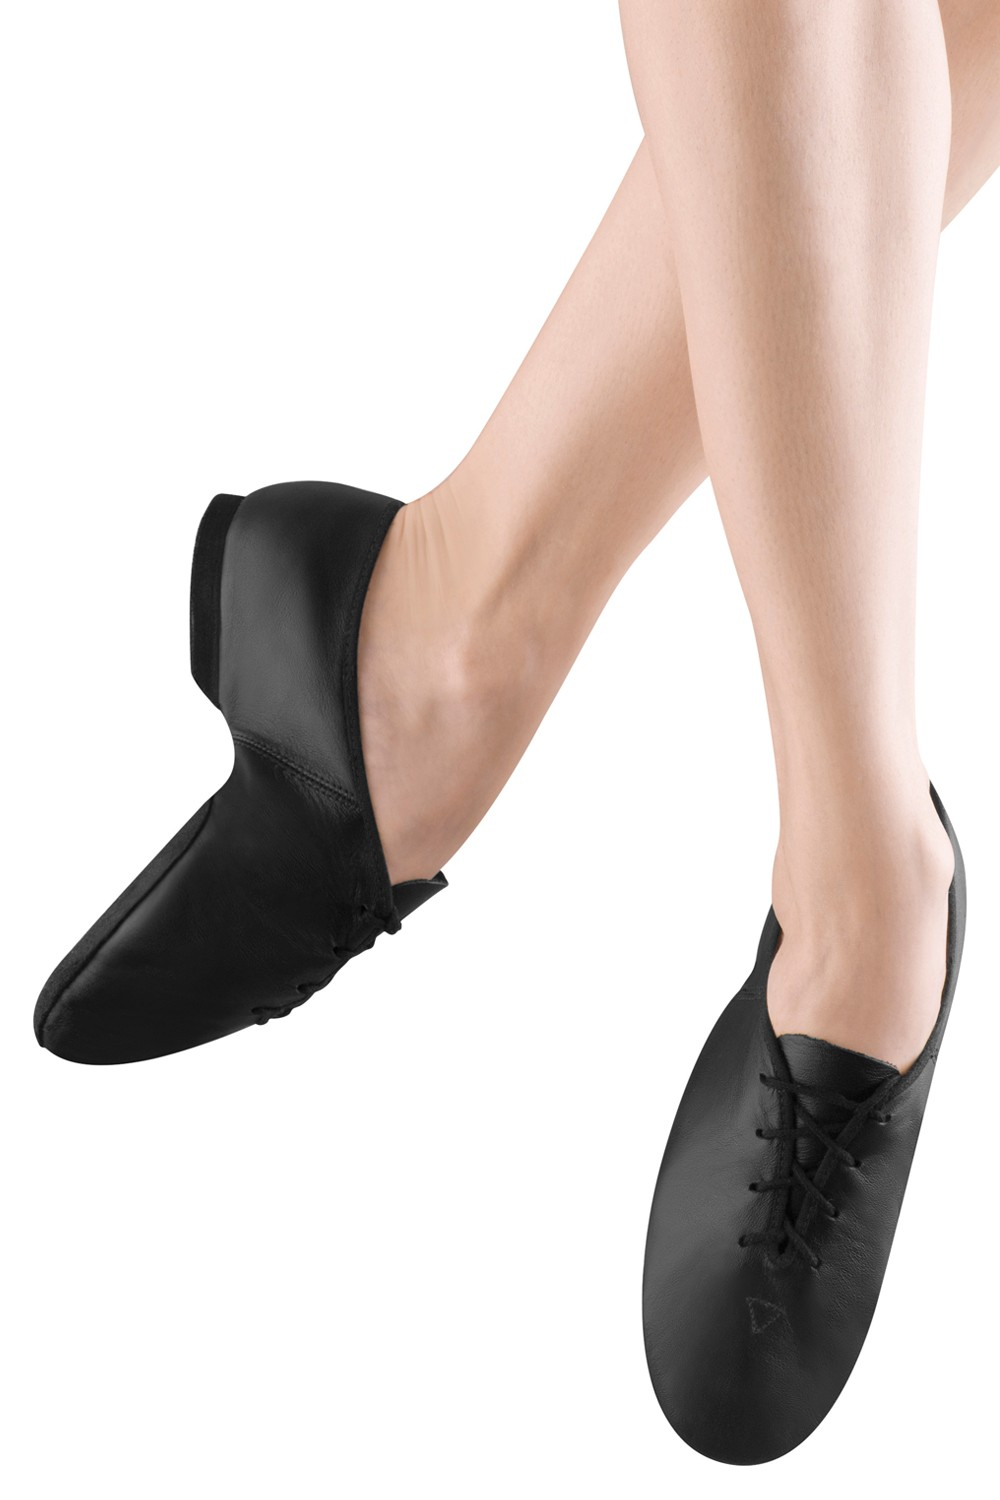 Debut Jazz Suede Sole Women's Jazz Shoes